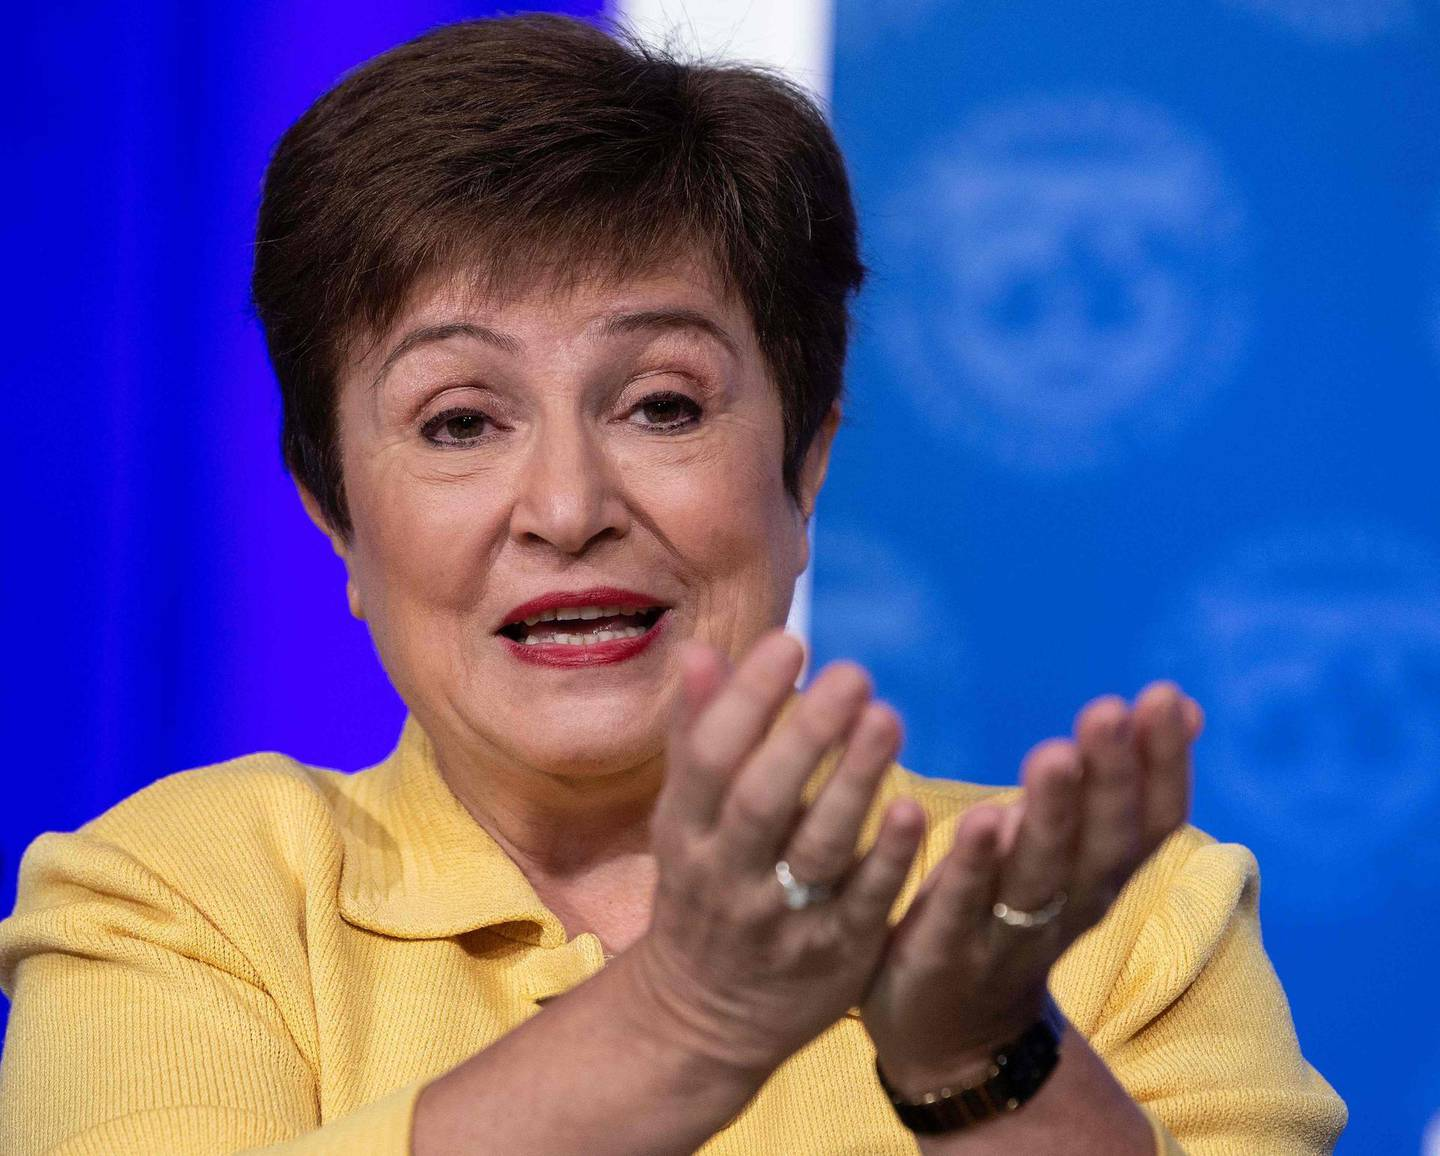 (FILES) In this file photo taken on March 04, 2020, IMF Managing Director Kristalina Georgieva speaks at a press briefing on Covid-19 in Washington, DC. African countries will need $1.2 trillion through 2023 to repair the economic damage inflicted by the coronavirus pandemic, Georgieva said on October 9, 2020. / AFP / NICHOLAS KAMM